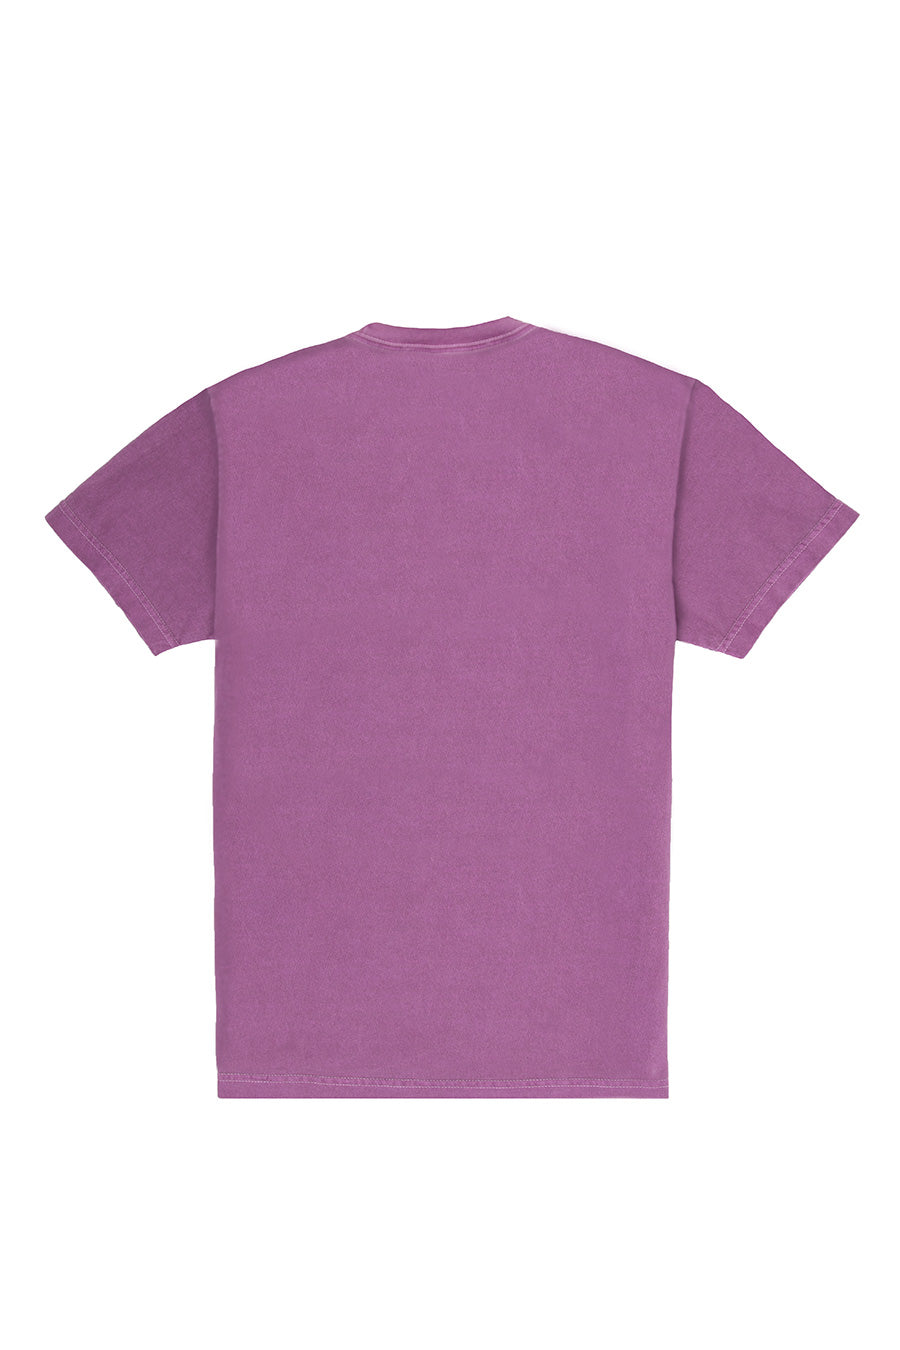 Pleasures - Purple Vile Pigment Dye T-Shirt | 1032 SPACE